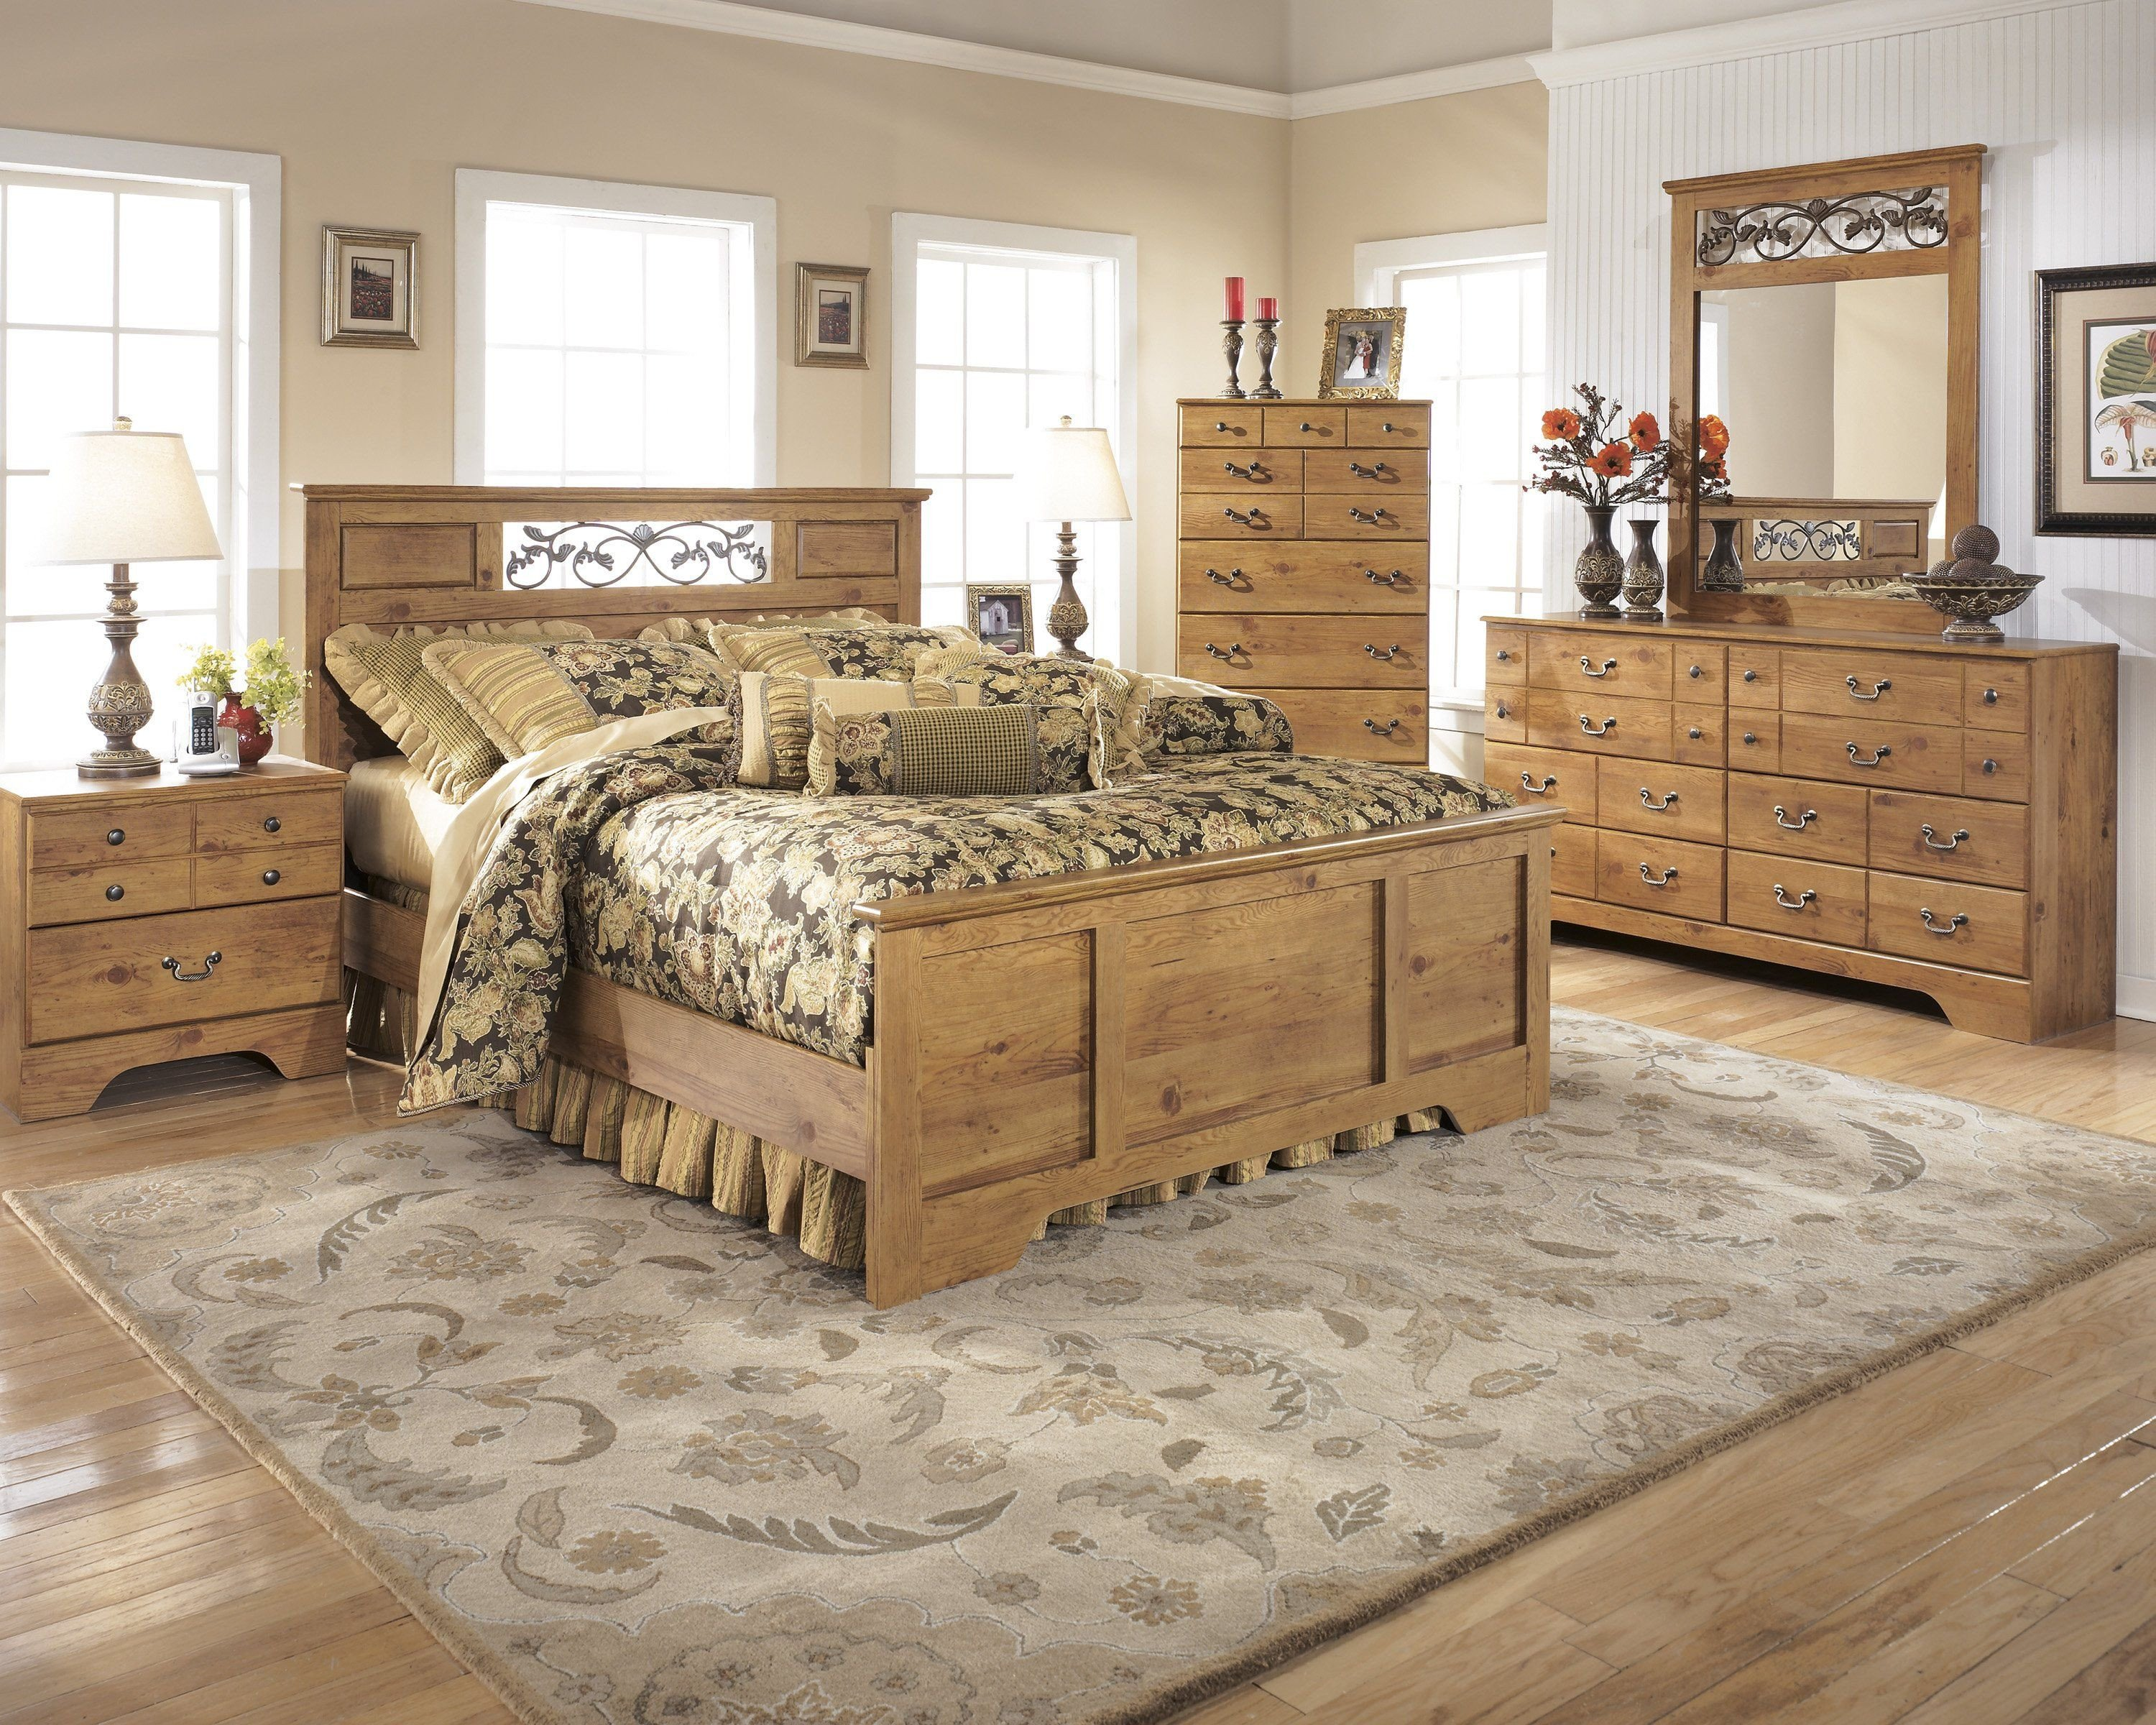 Cedar Log Bedroom Furniture Awesome Signature Design by ashley Bittersweet 4 Piece Queen Panel